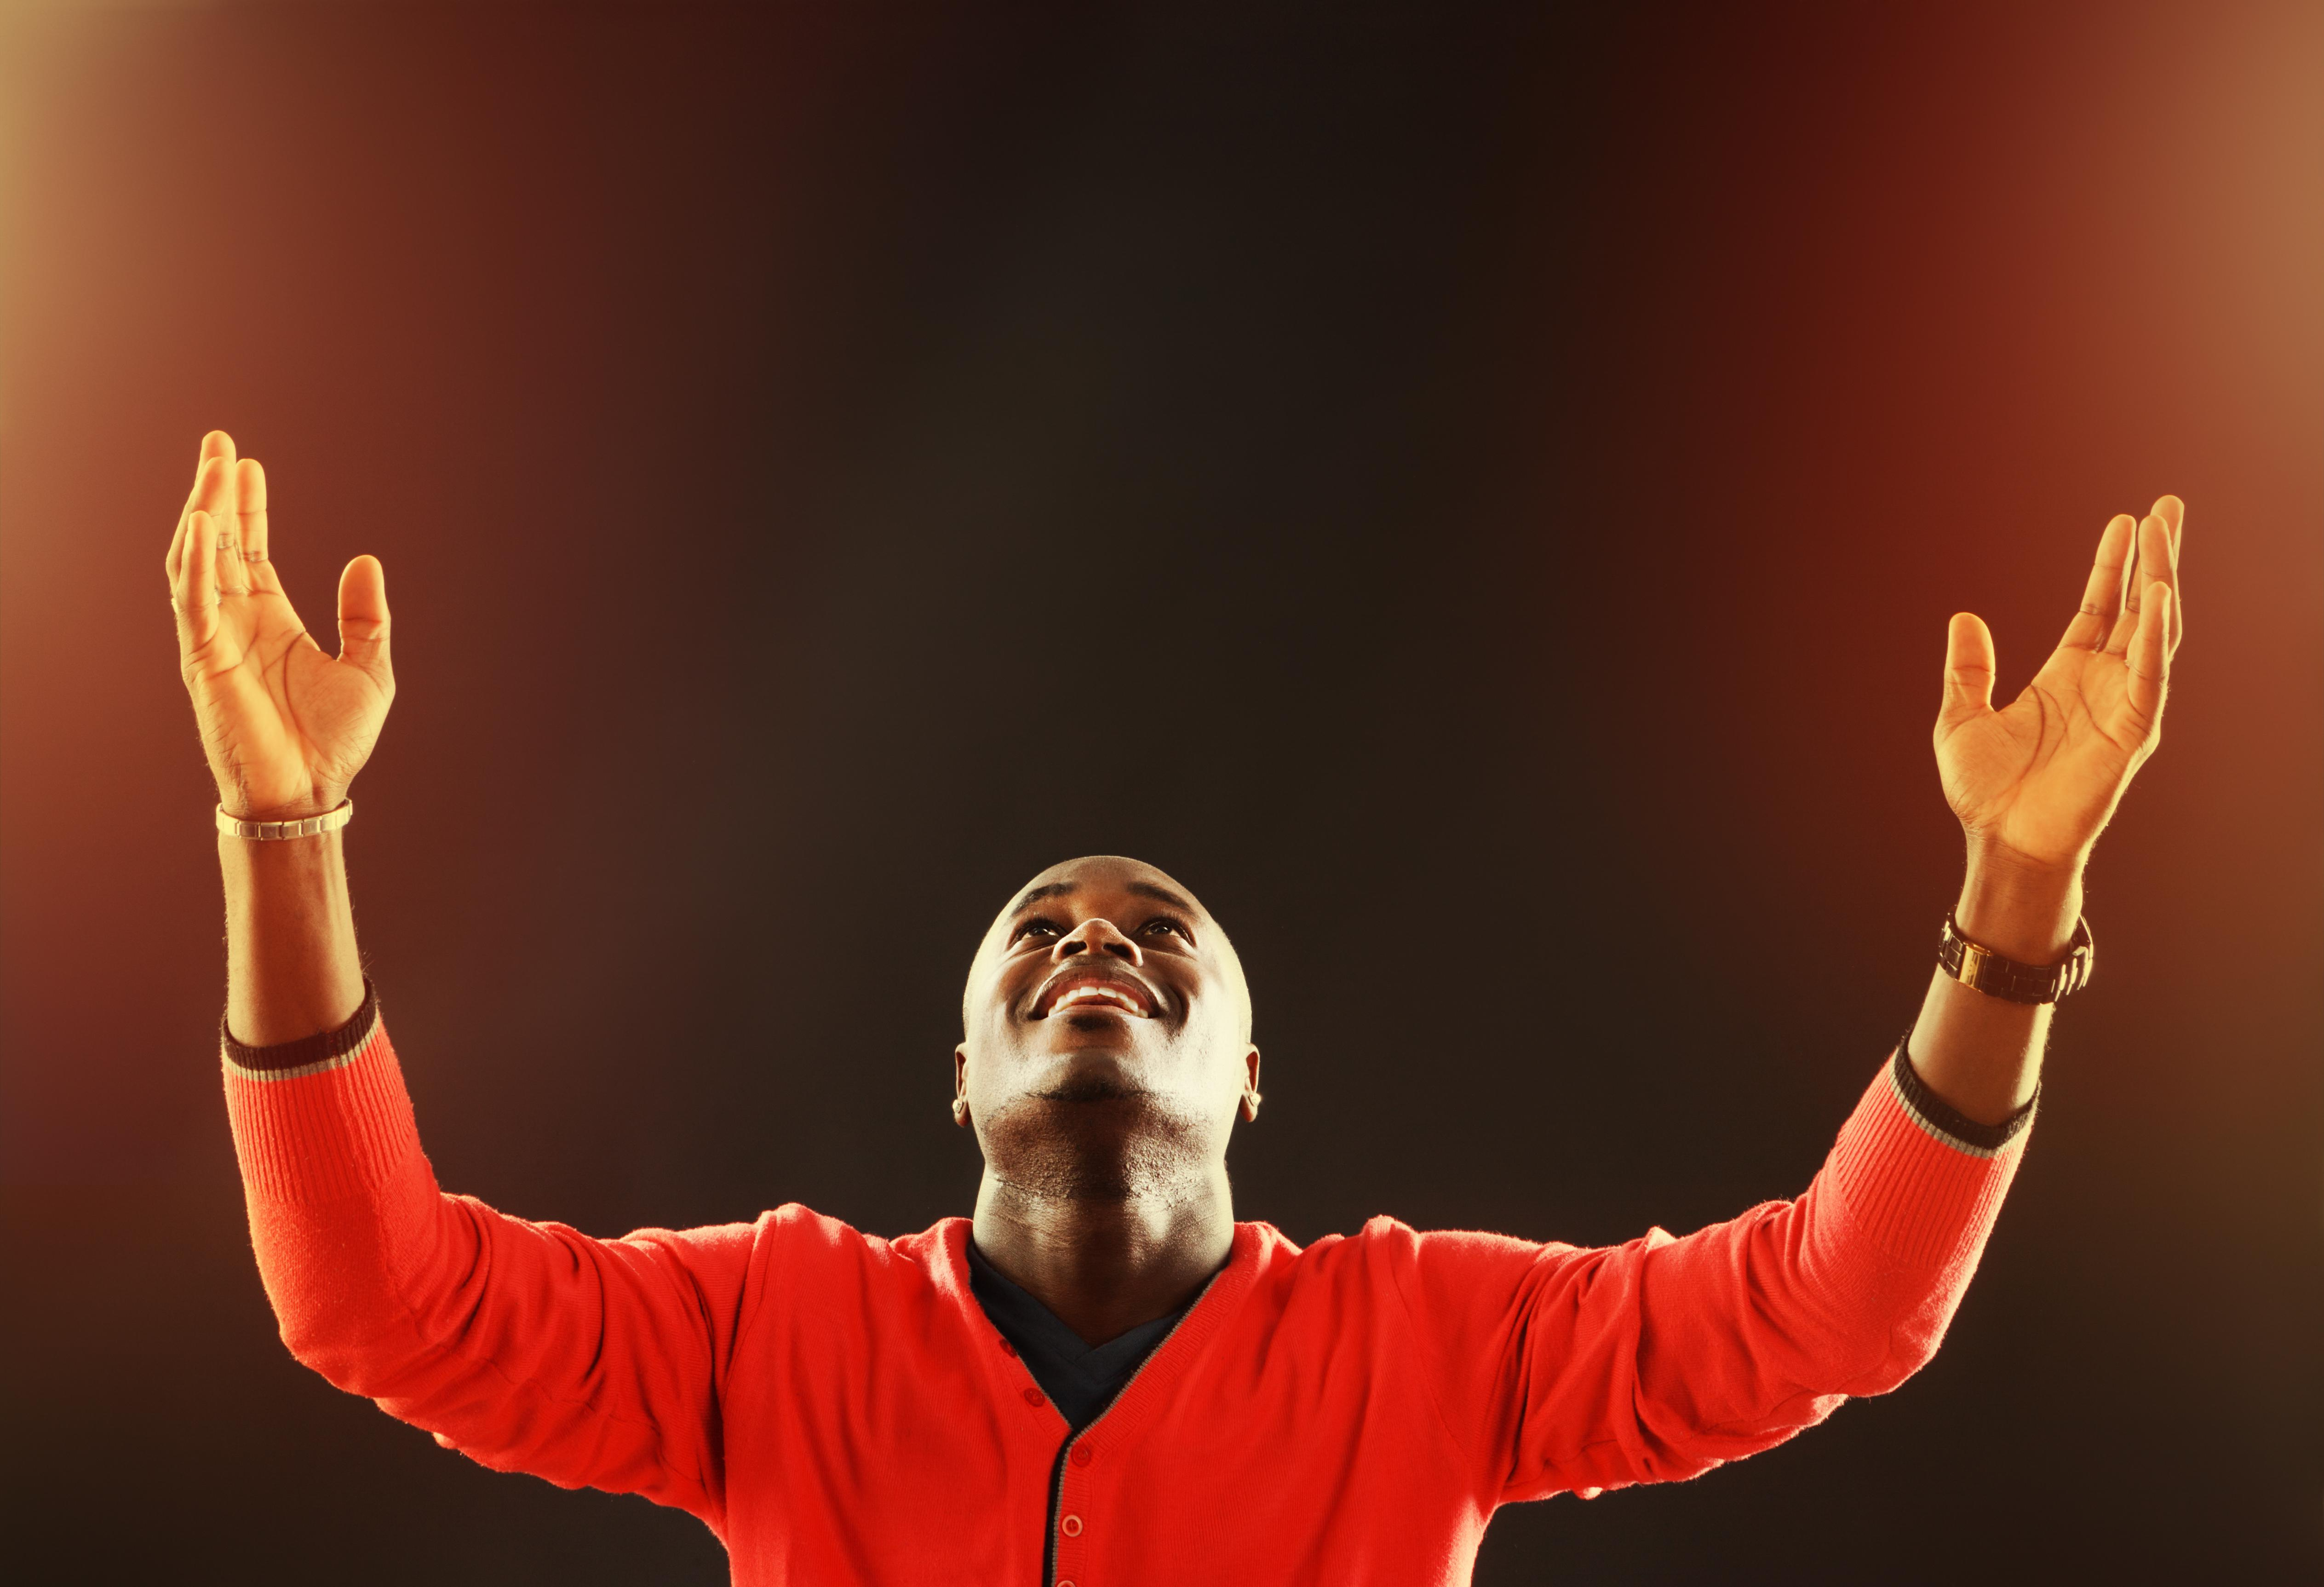 Inspired young man looks up, his hands raised in prayer